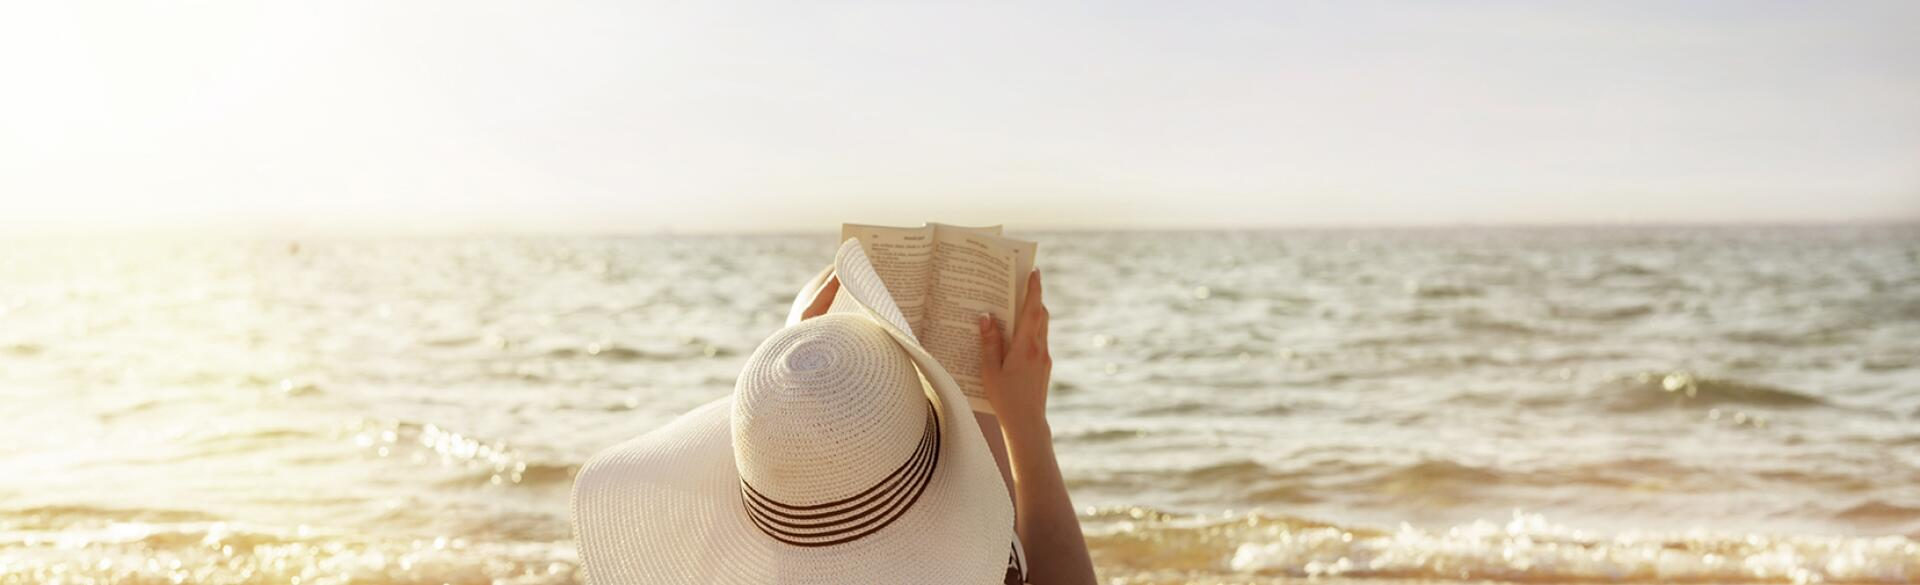 woman laying on towel reading on beach in the sun